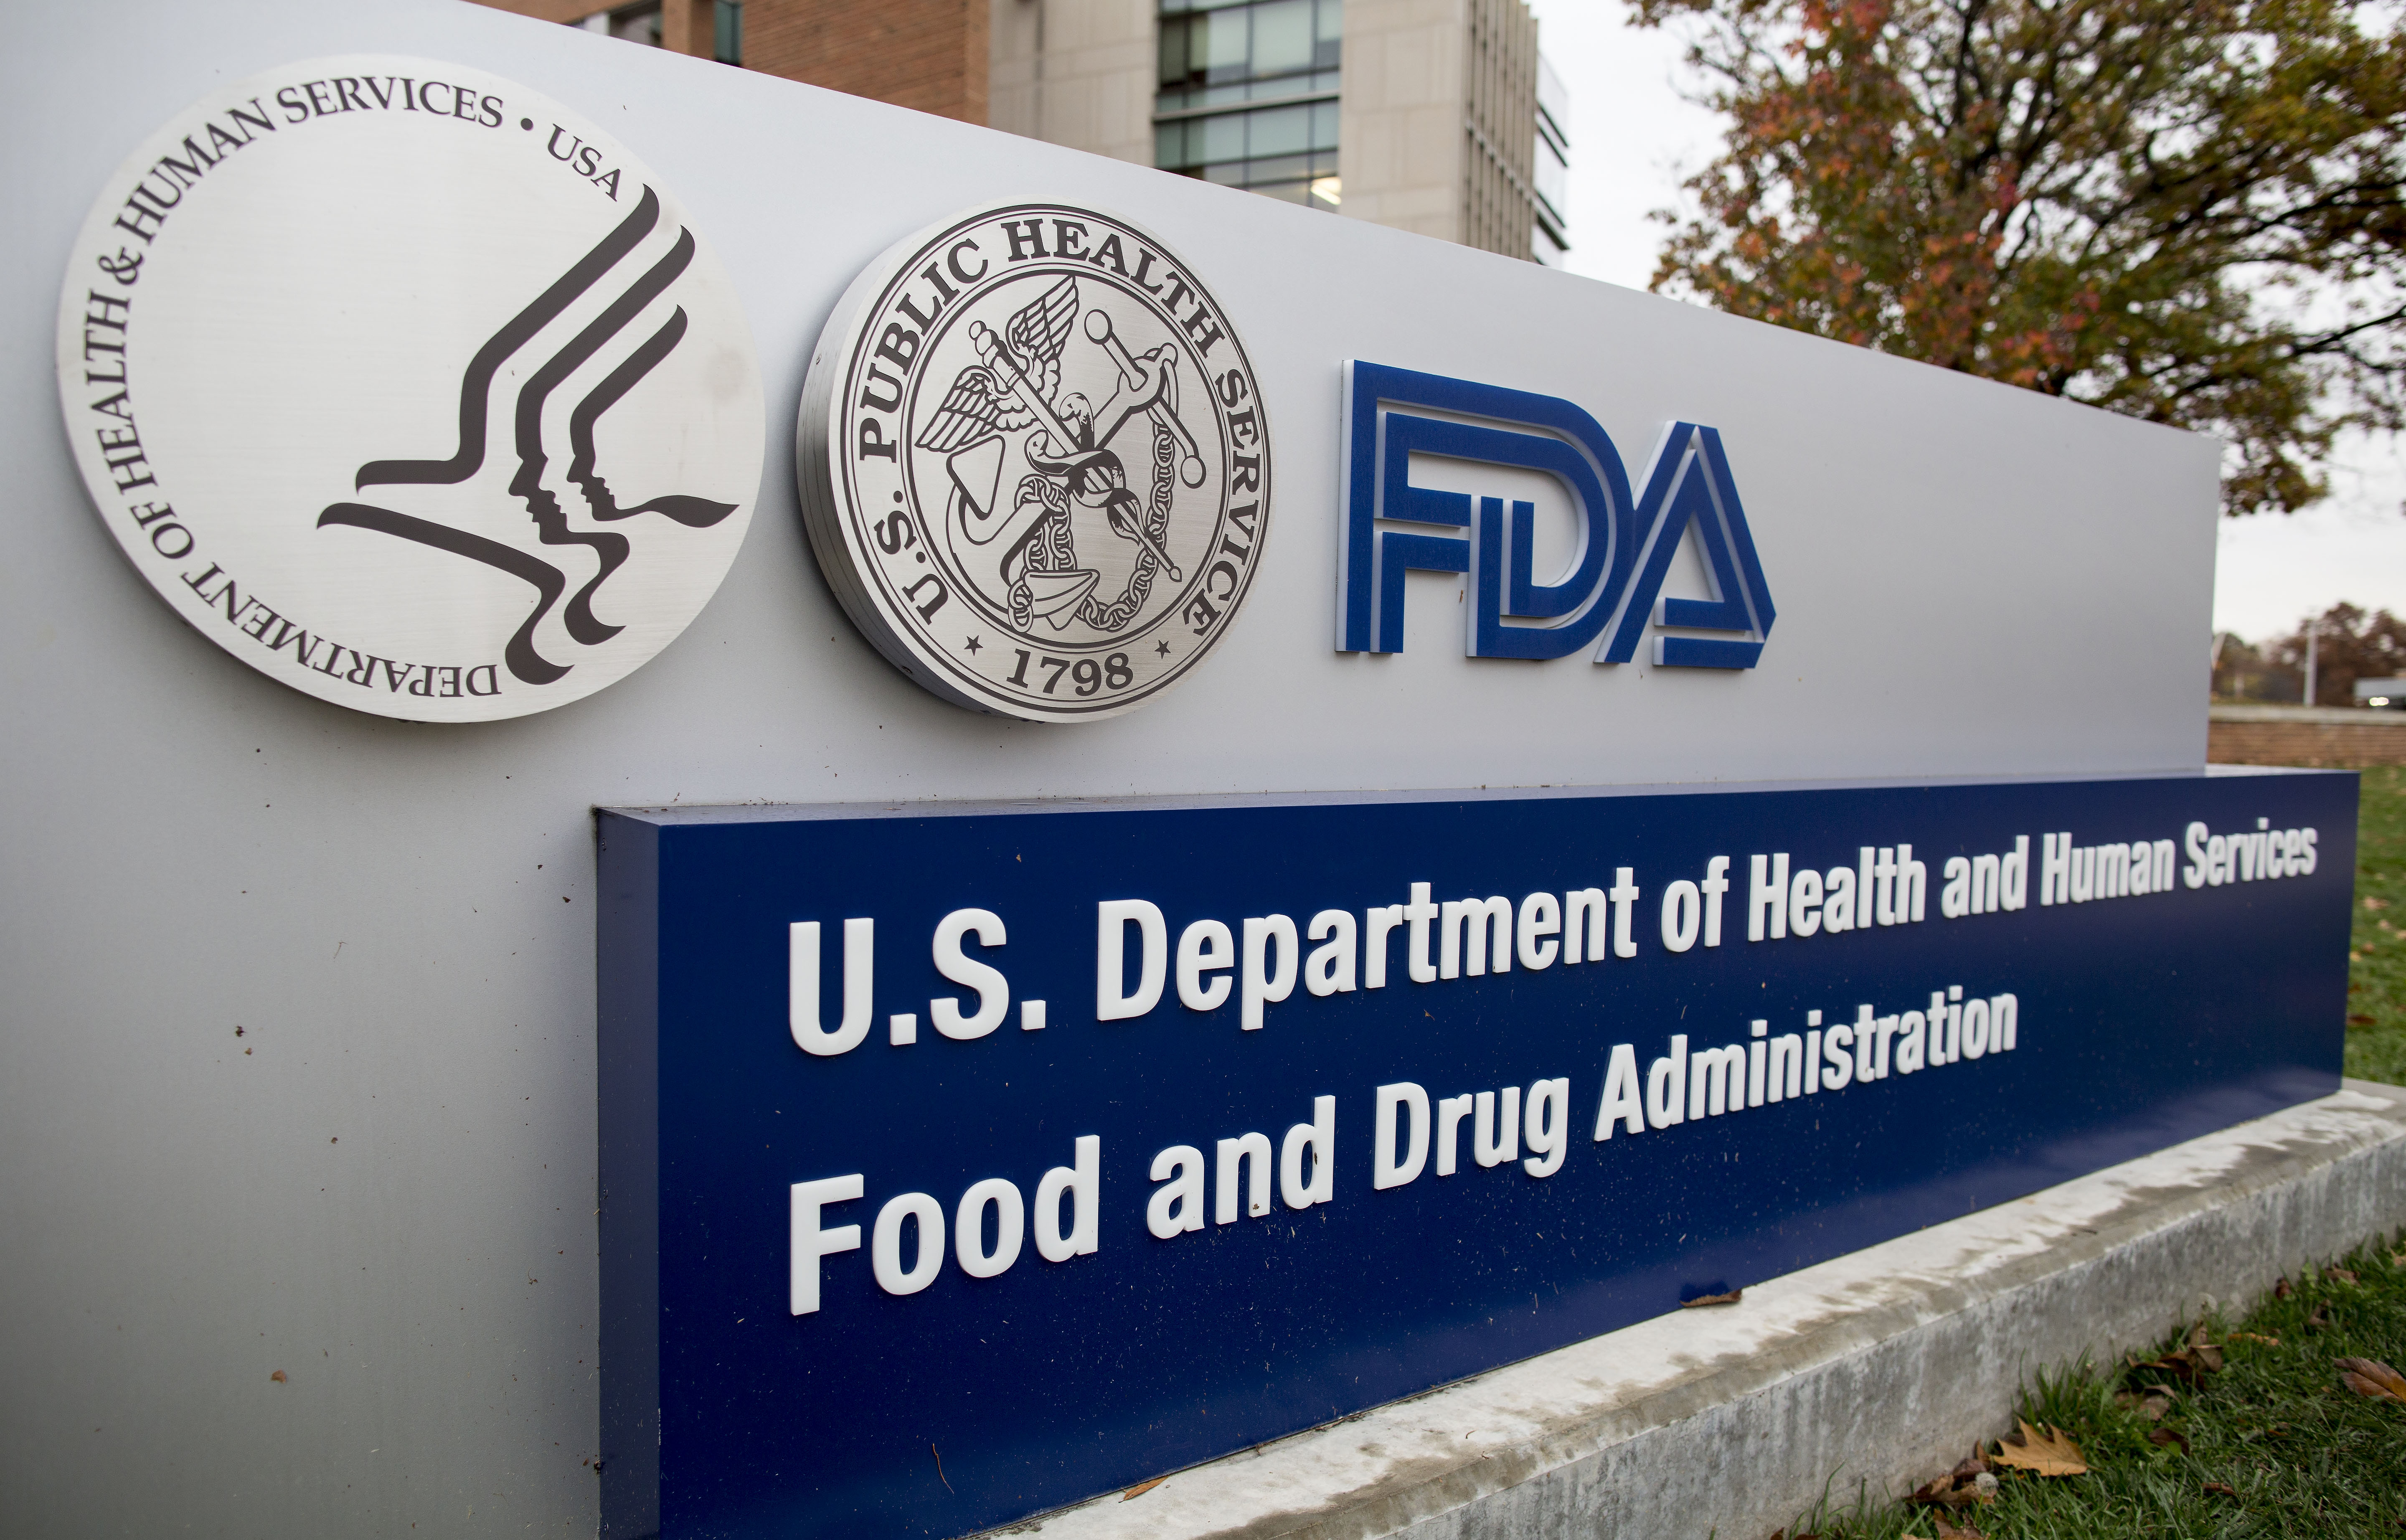 FDA authorized 23andMe to perform direct to consumer BRCA testing